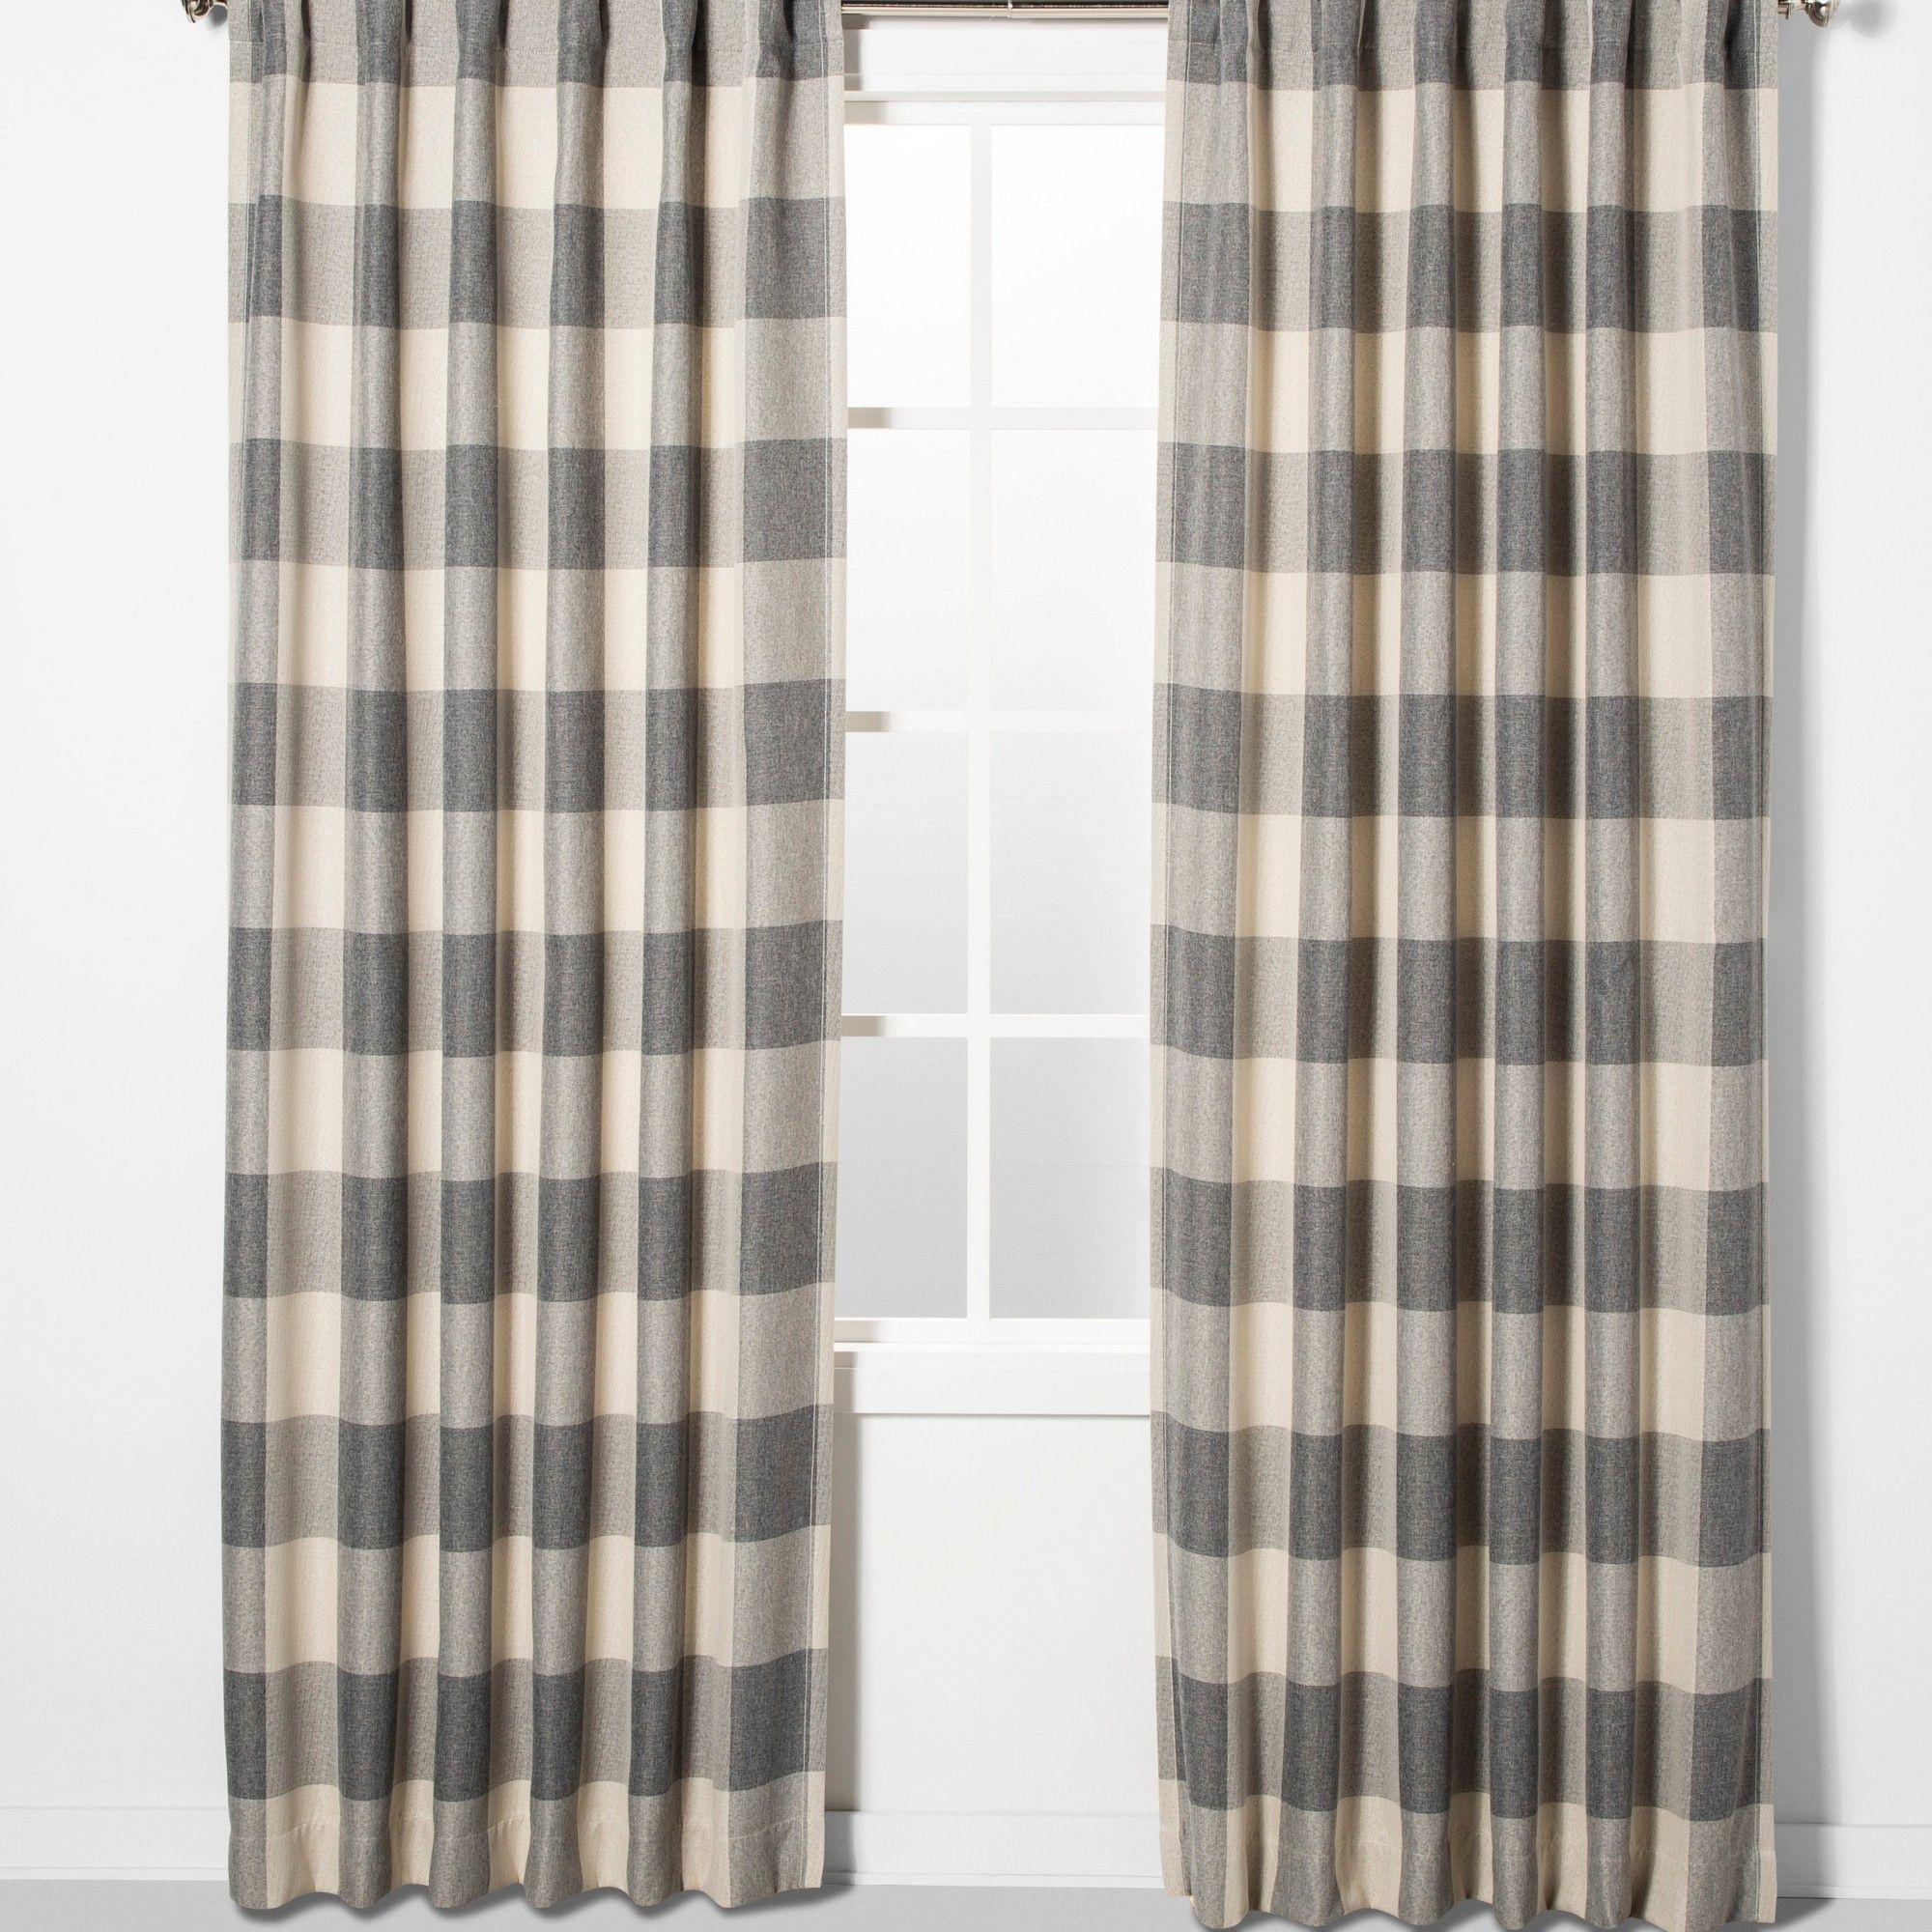 """52""""x84"""" Larkhall Plaid Blackout Window Curtain Panel Gray With Cotton Blend Classic Checkered Decorative Window Curtains (View 1 of 20)"""